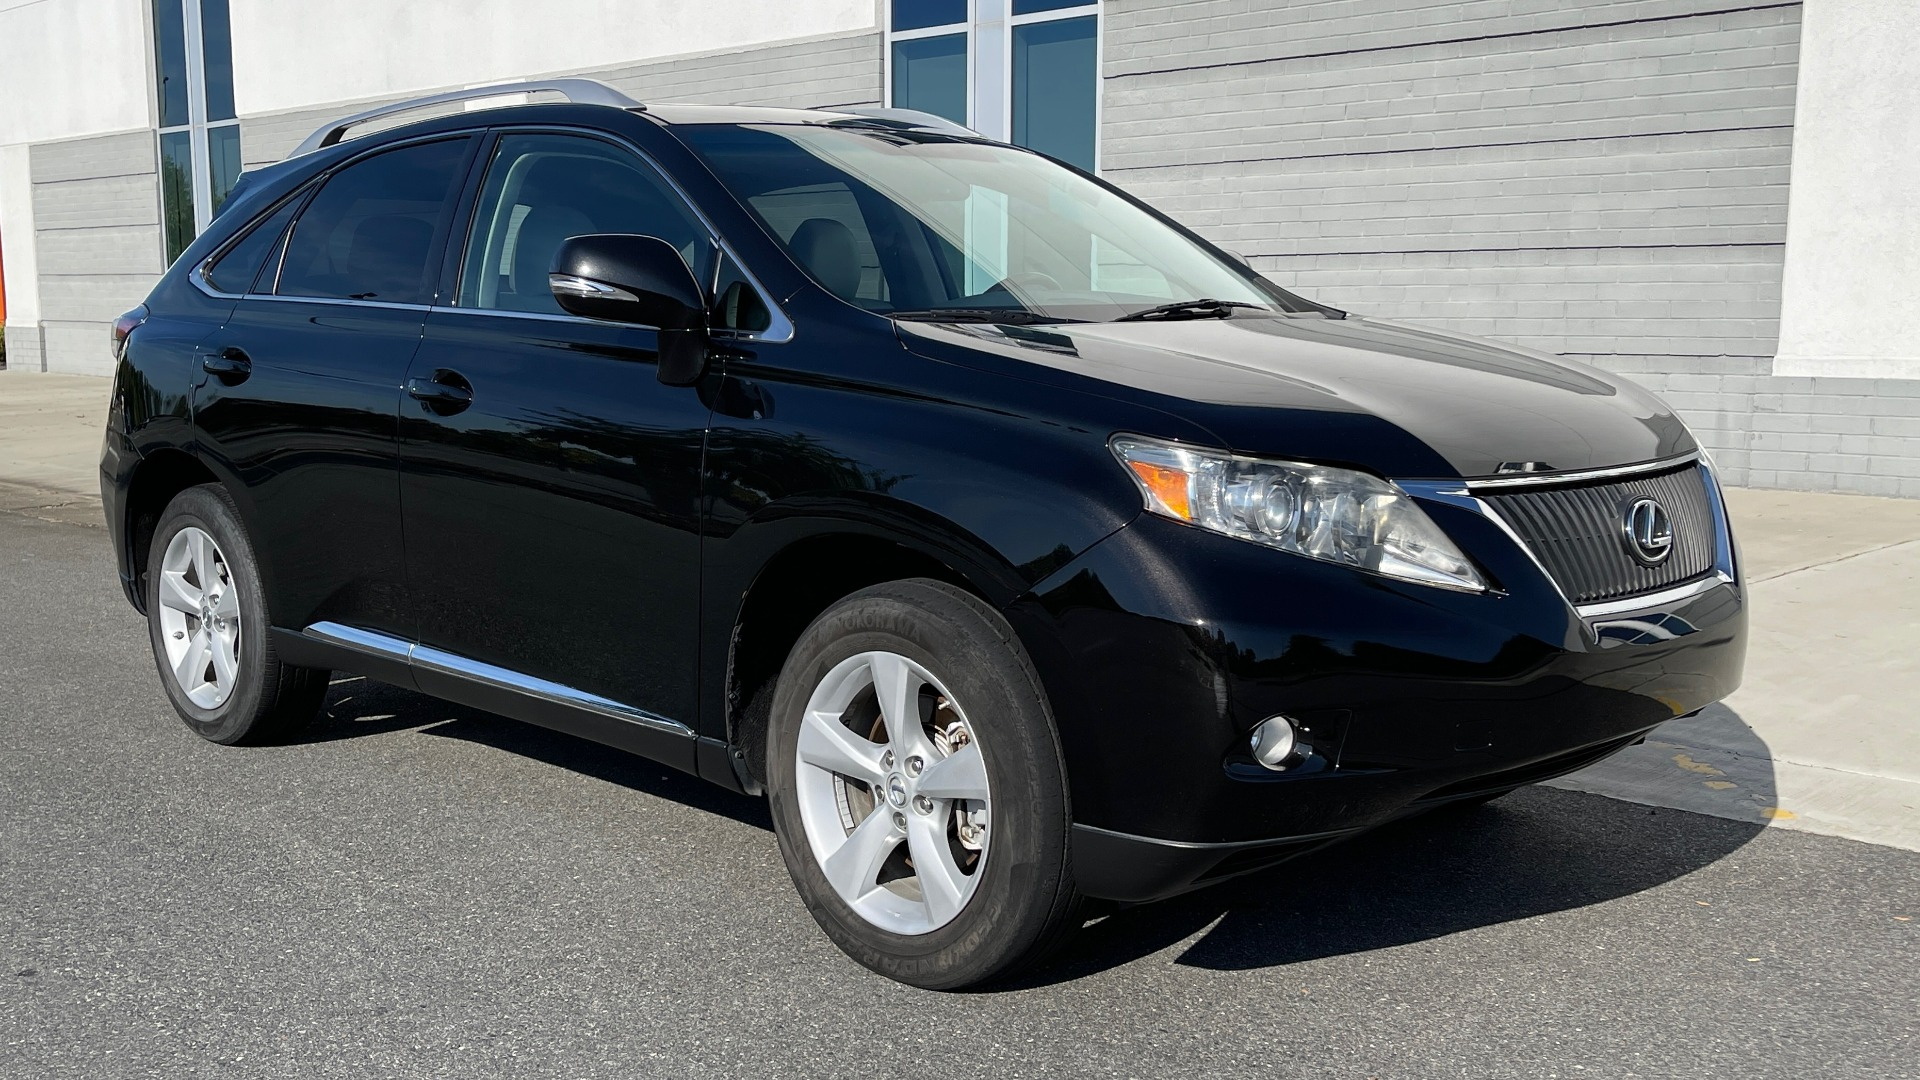 Used 2011 Lexus RX 350 PREMIUM / TOWING PREP PKG / VENTILATED STS / SUNROOF / REARVIEW for sale Sold at Formula Imports in Charlotte NC 28227 5